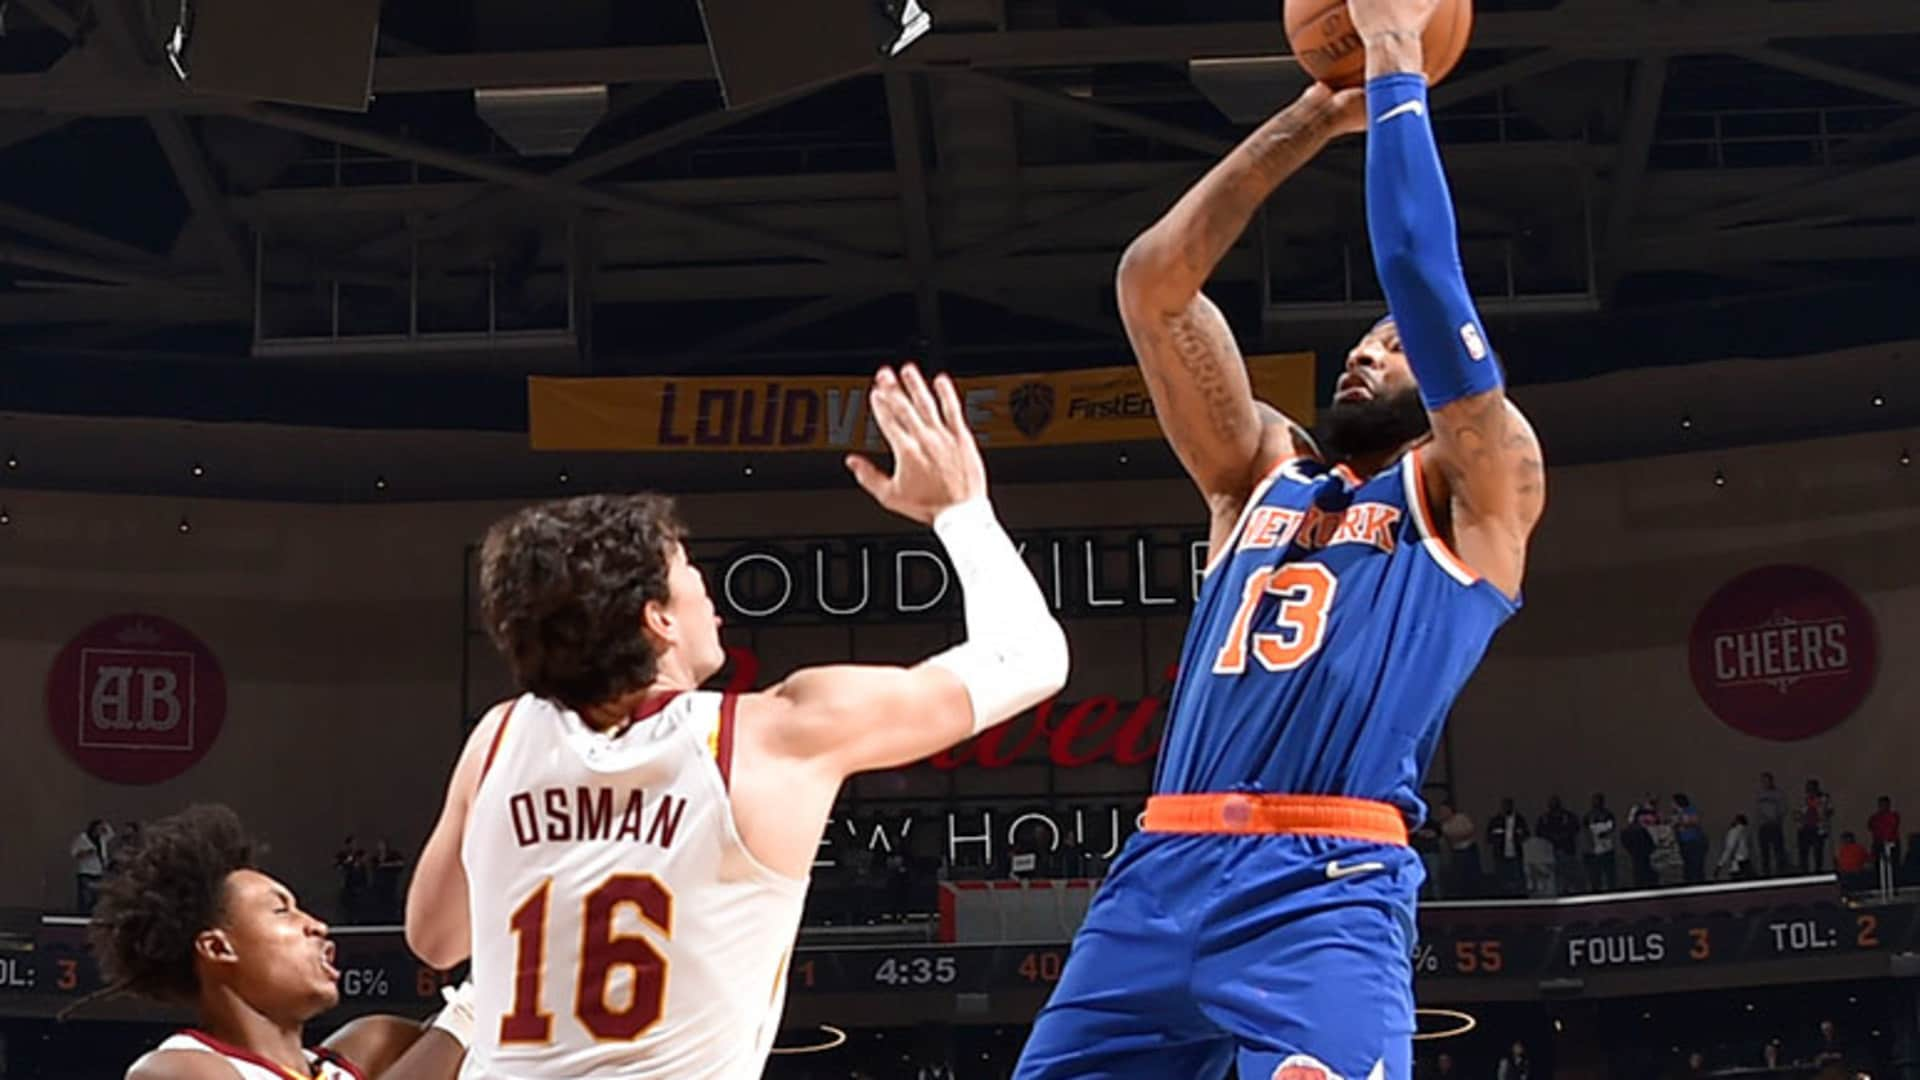 Highlights: Marcus Morris Sr. (26 Points) | Knicks @ Cavaliers